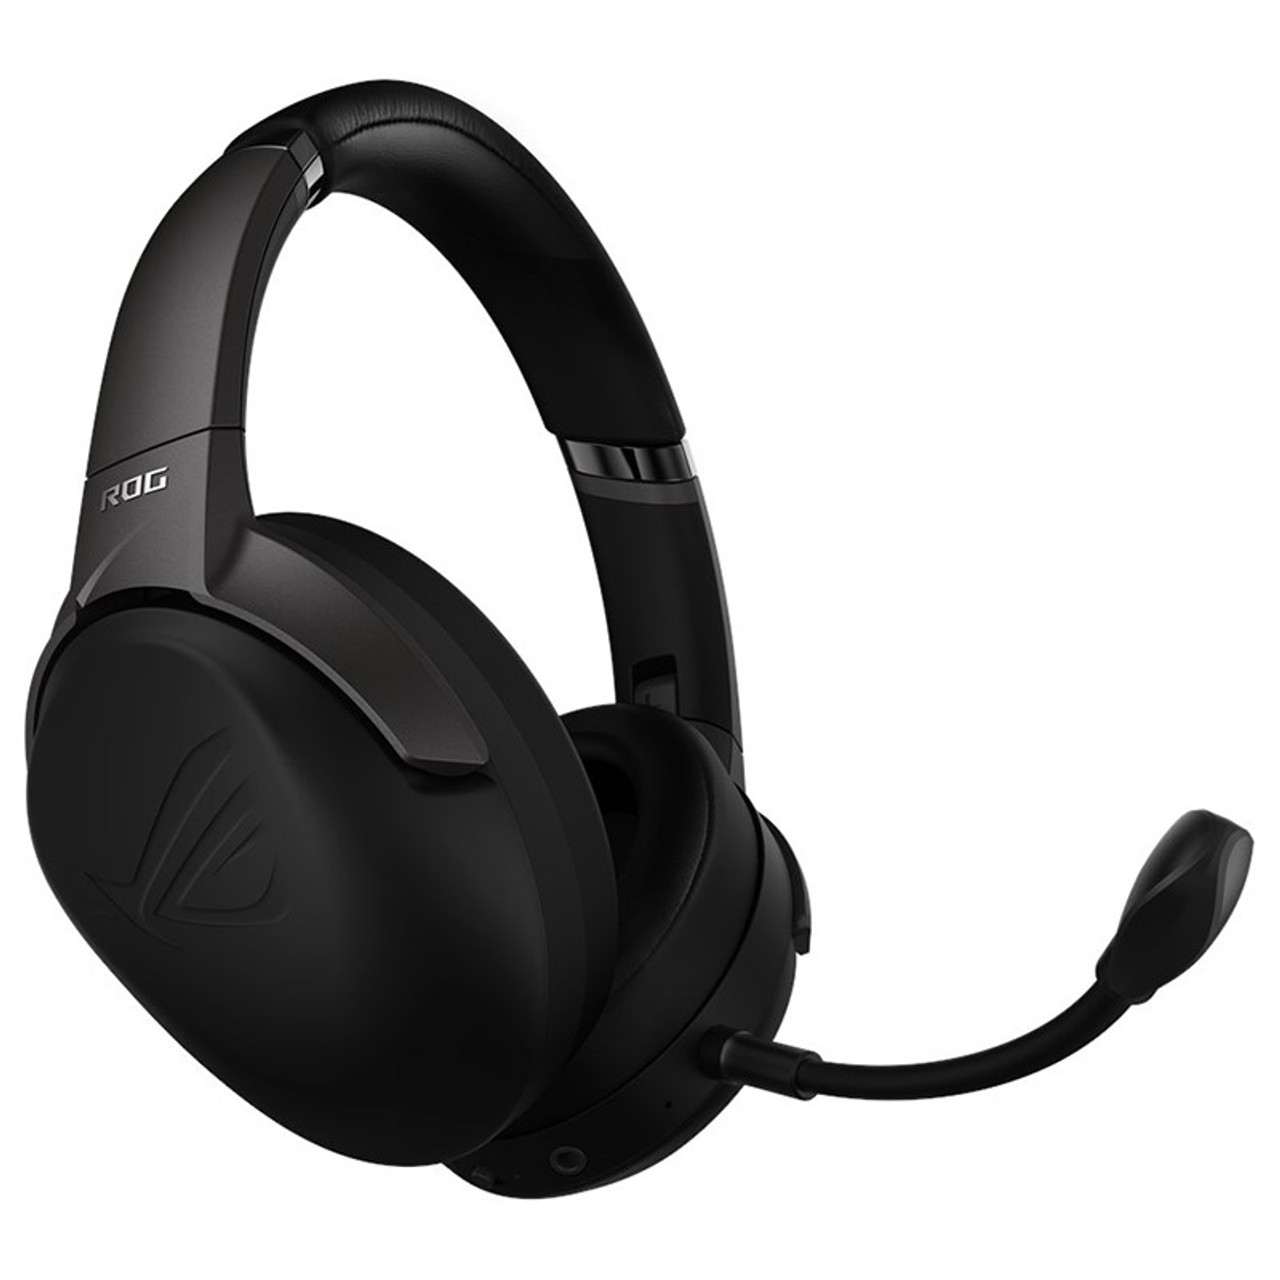 Image for Asus ROG Strix GO 2.4 GHz Wireless Gaming Headset CX Computer Superstore